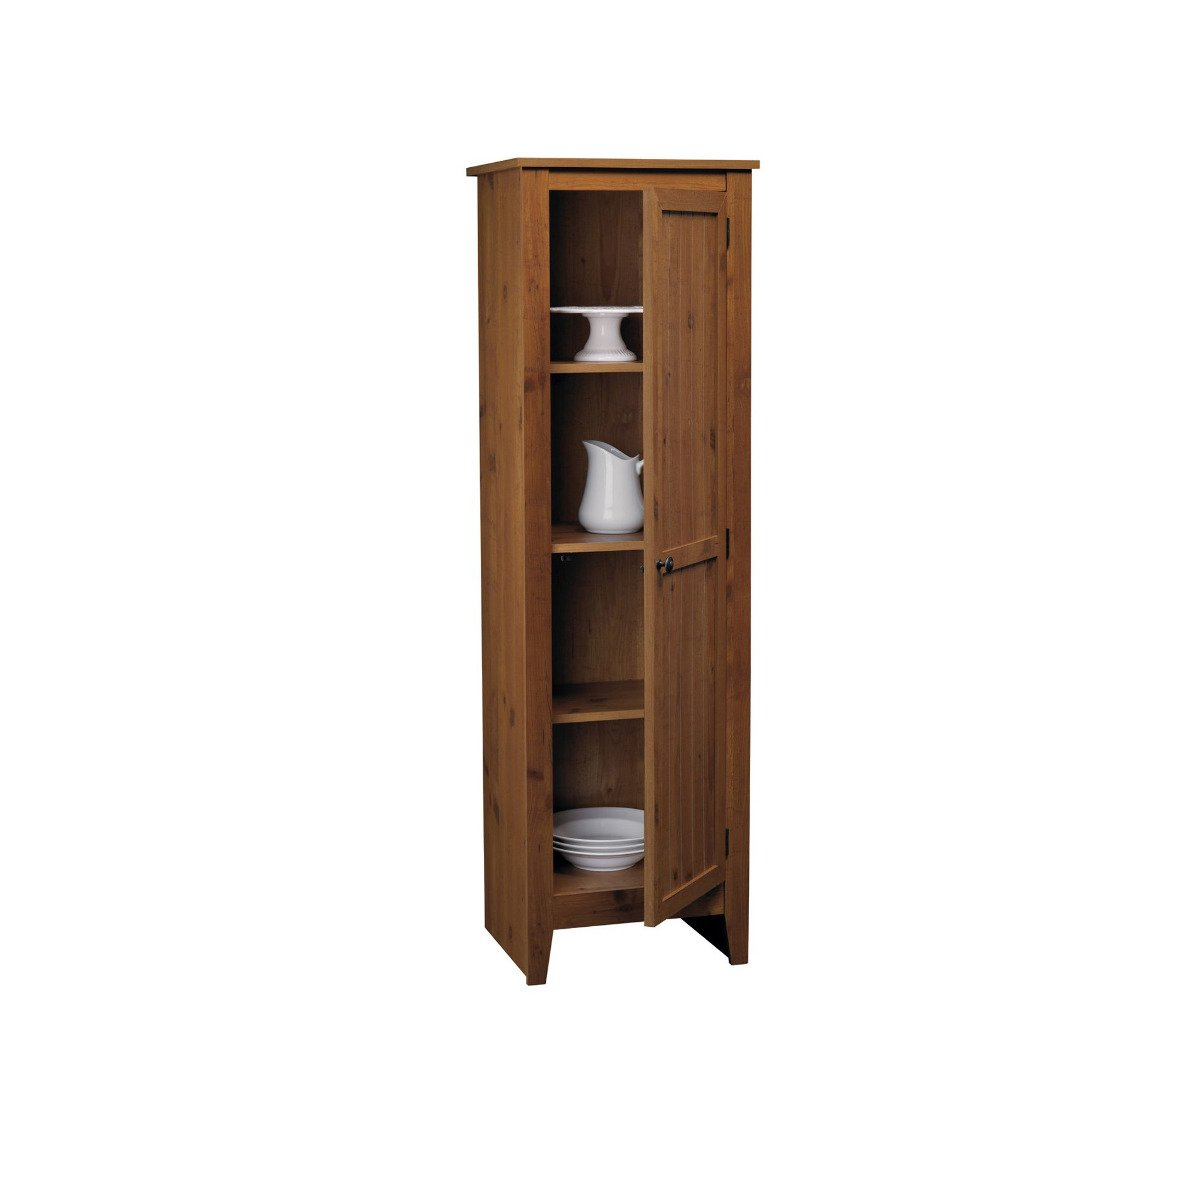 Amazon.com: Adeptus Solid Wood Single Door Pantry Cabinet, Pecan ...